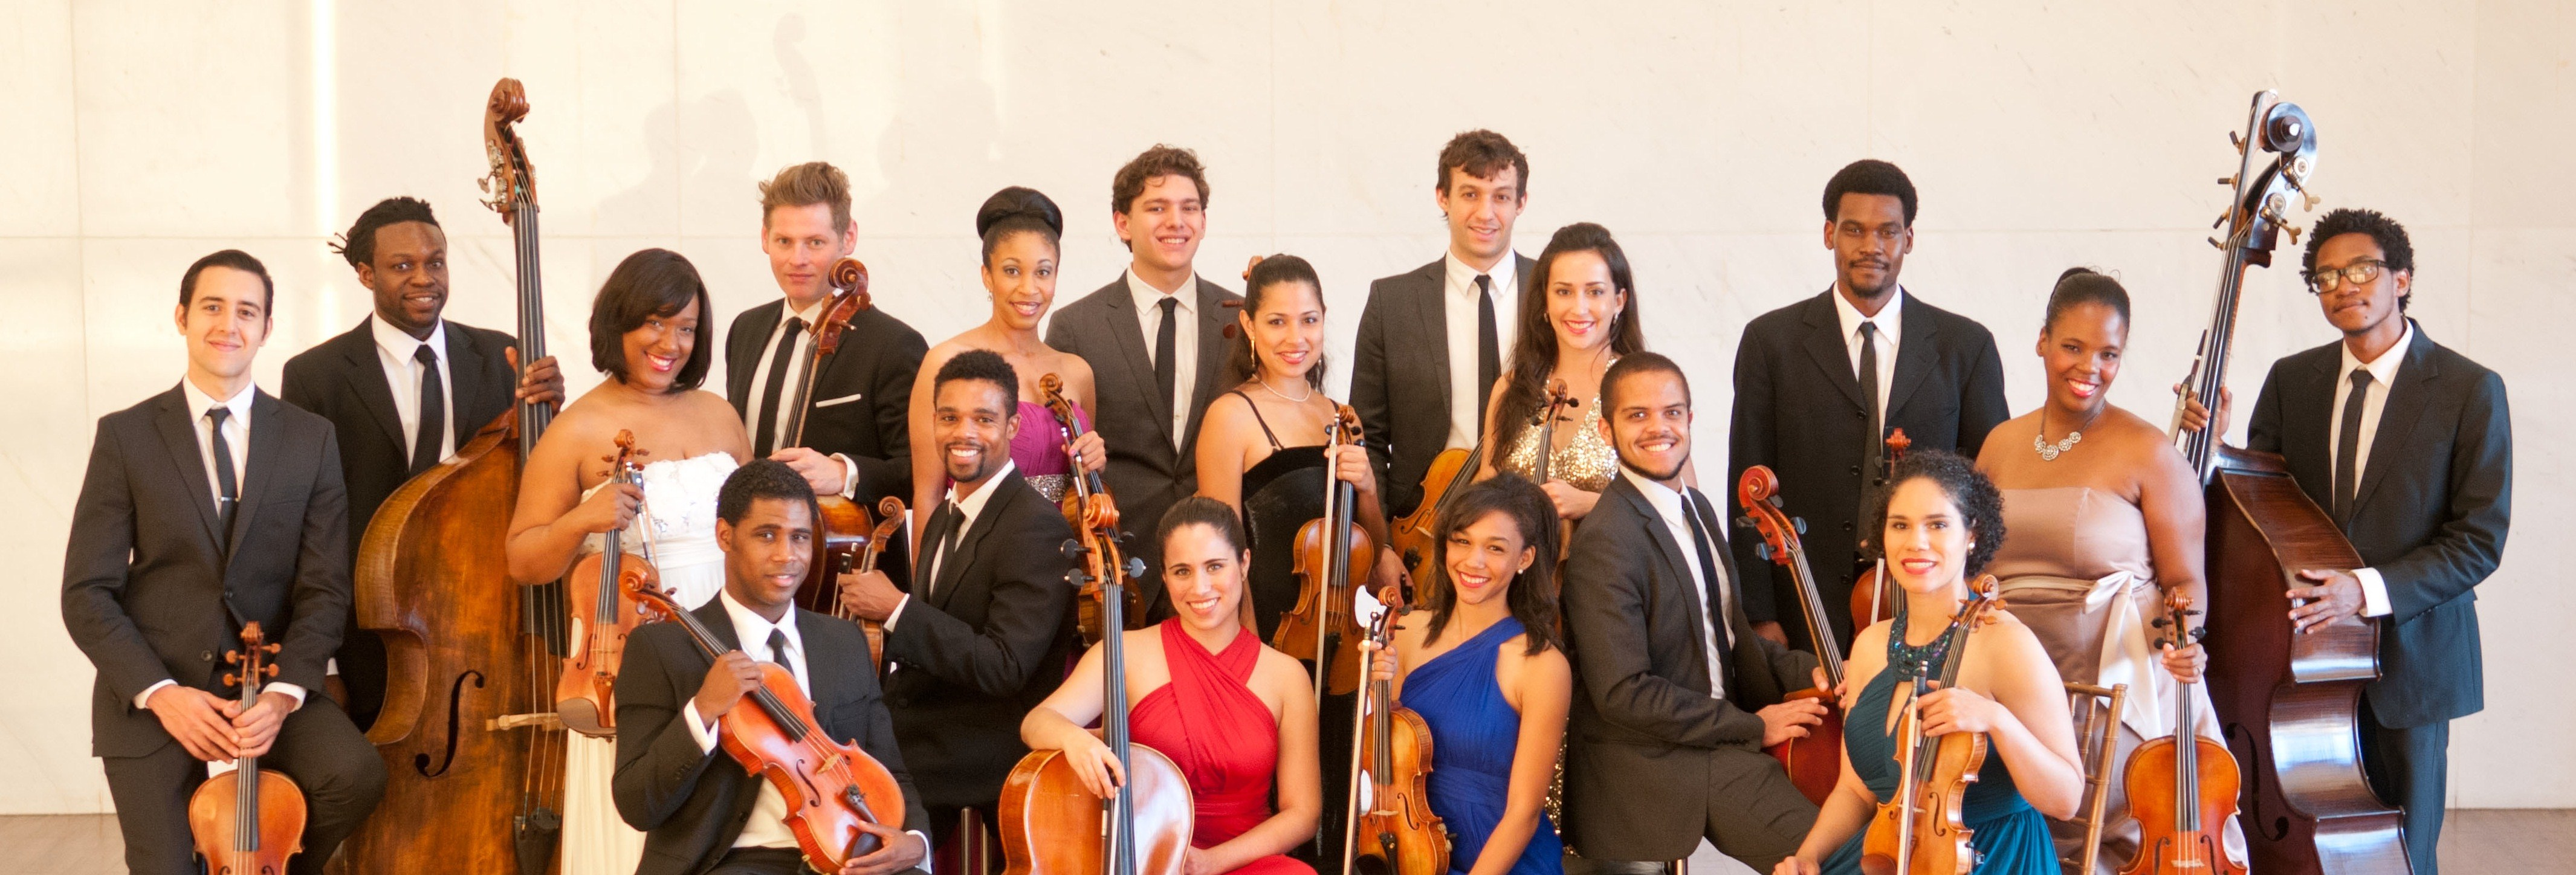 WELCOME TO THE (DIVERSE) FUTURE: Harriman series presents pioneering classical ensemble